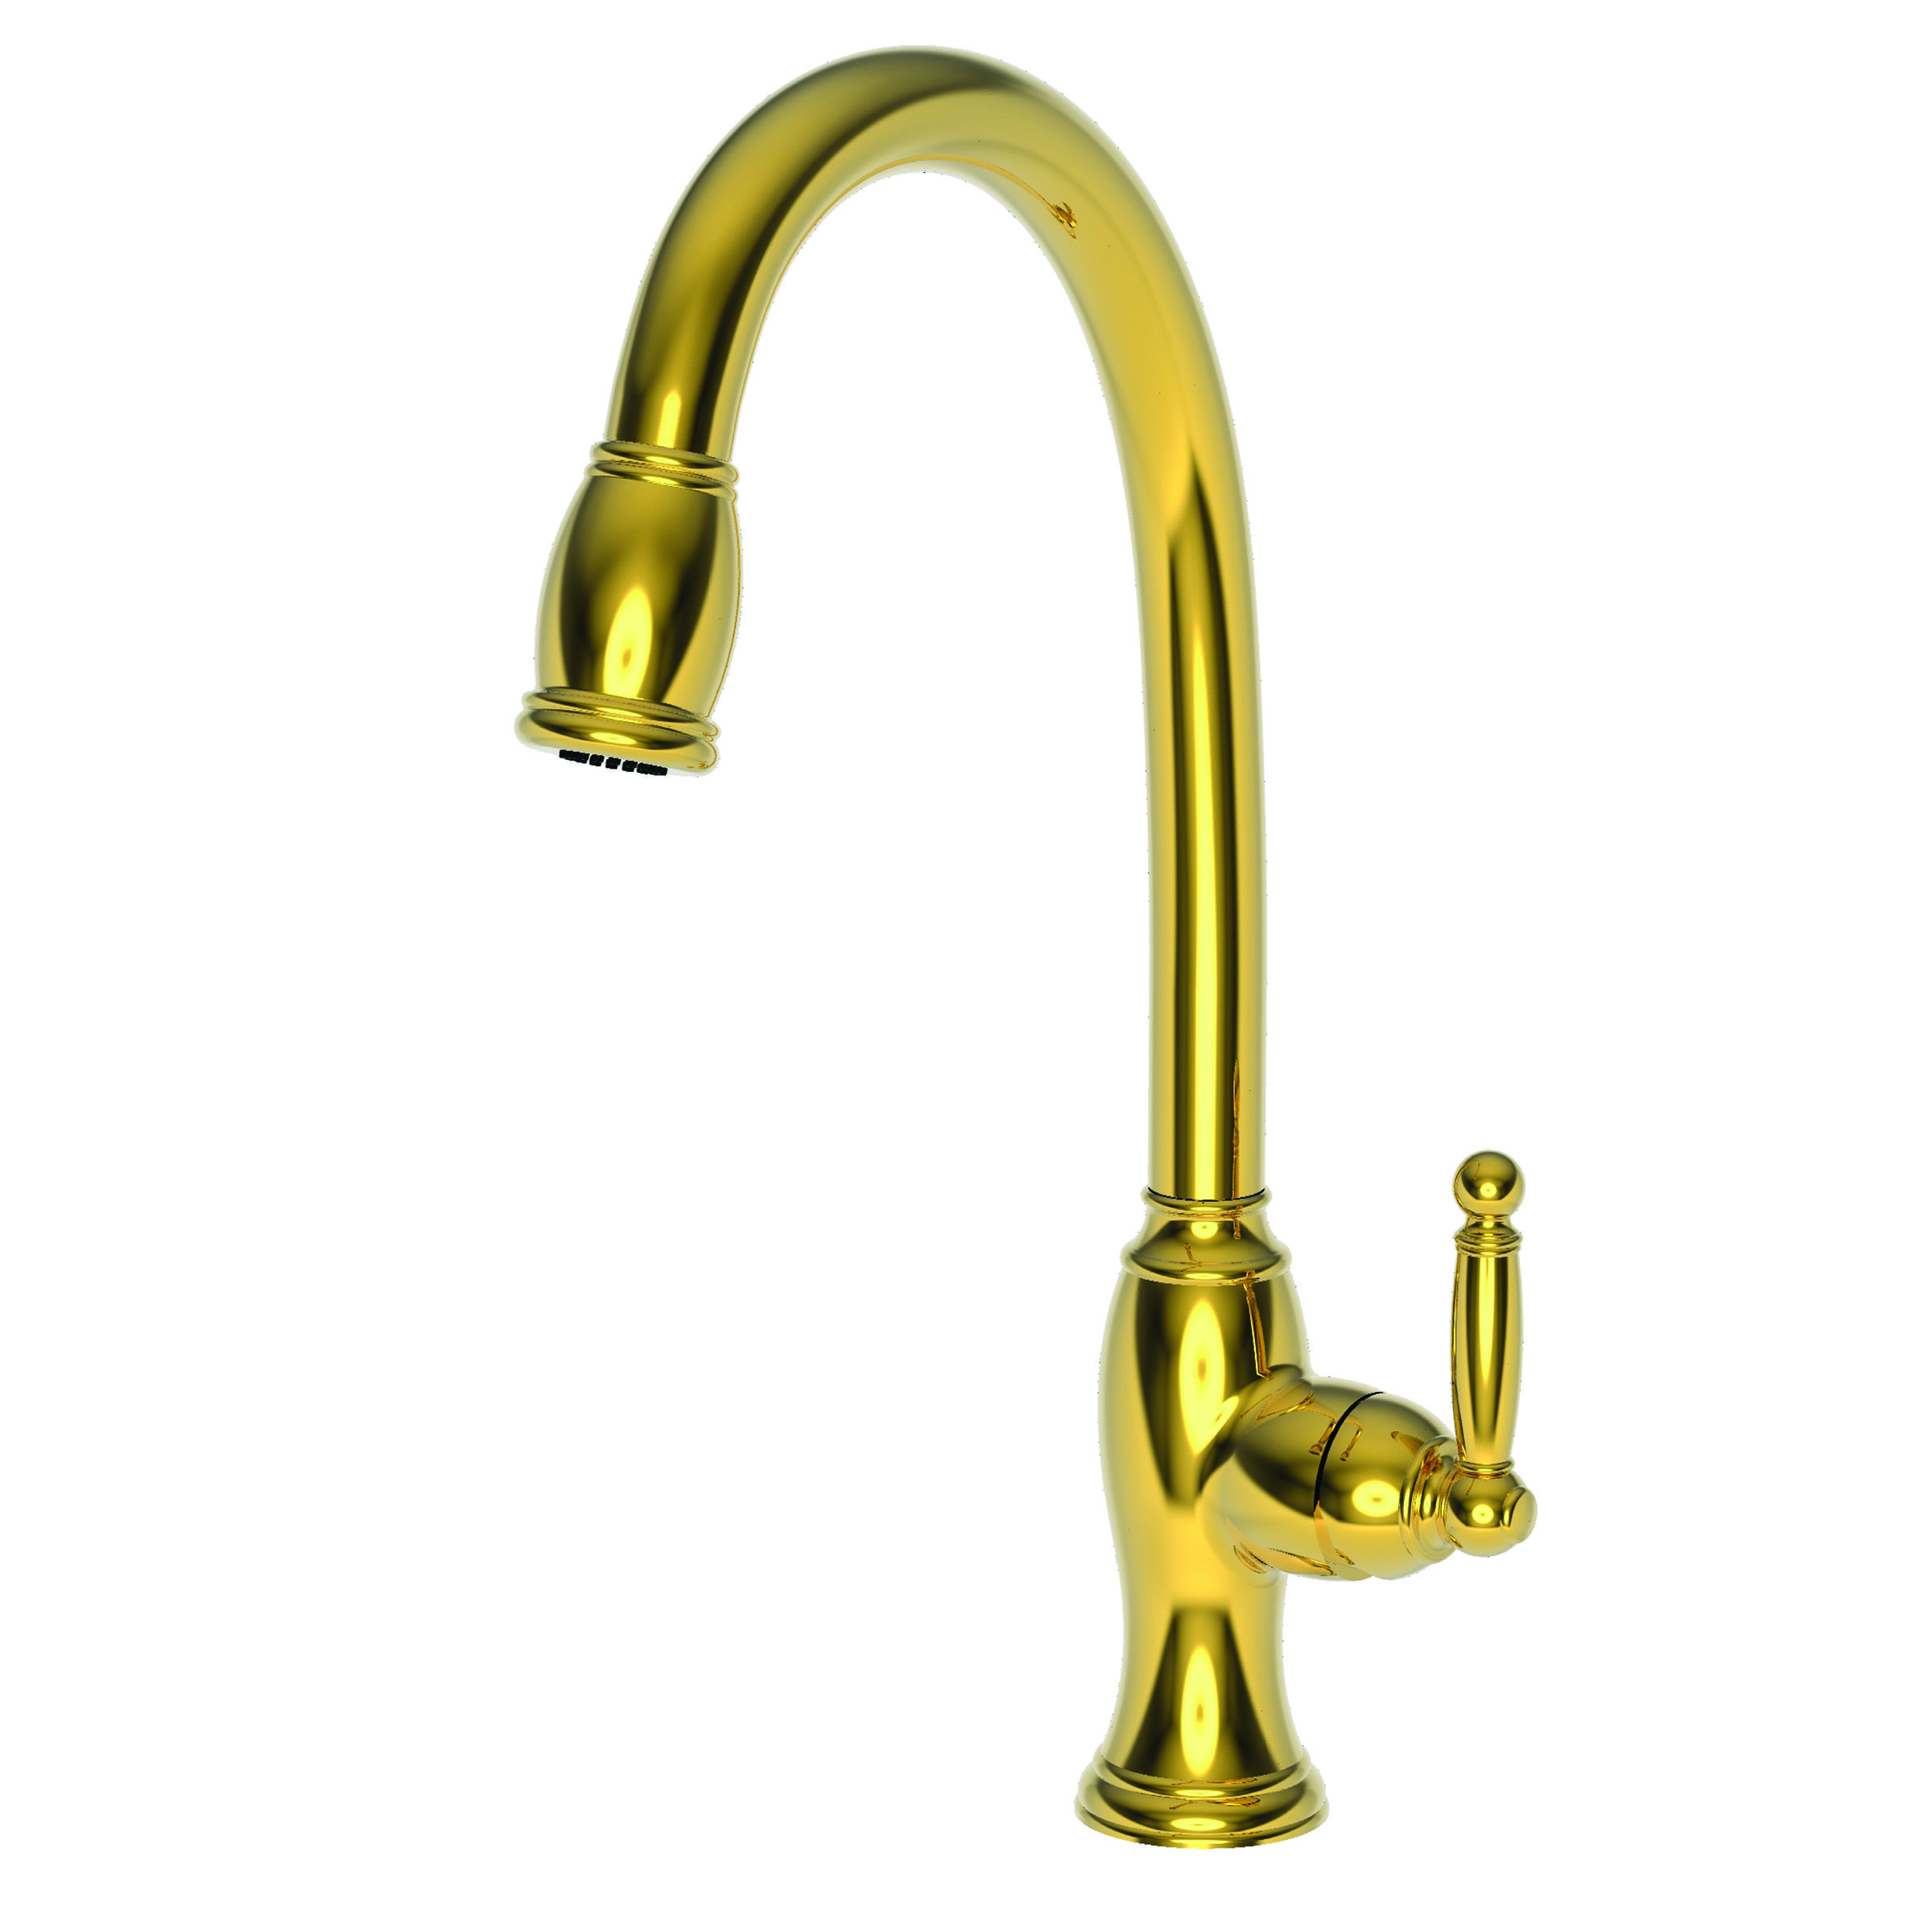 gooseneck one bathroom handle cifial faucets single aged of unlacquered size changing reviews leaky red for brass symmons kitchen faucet tap marvelous x sink lever full